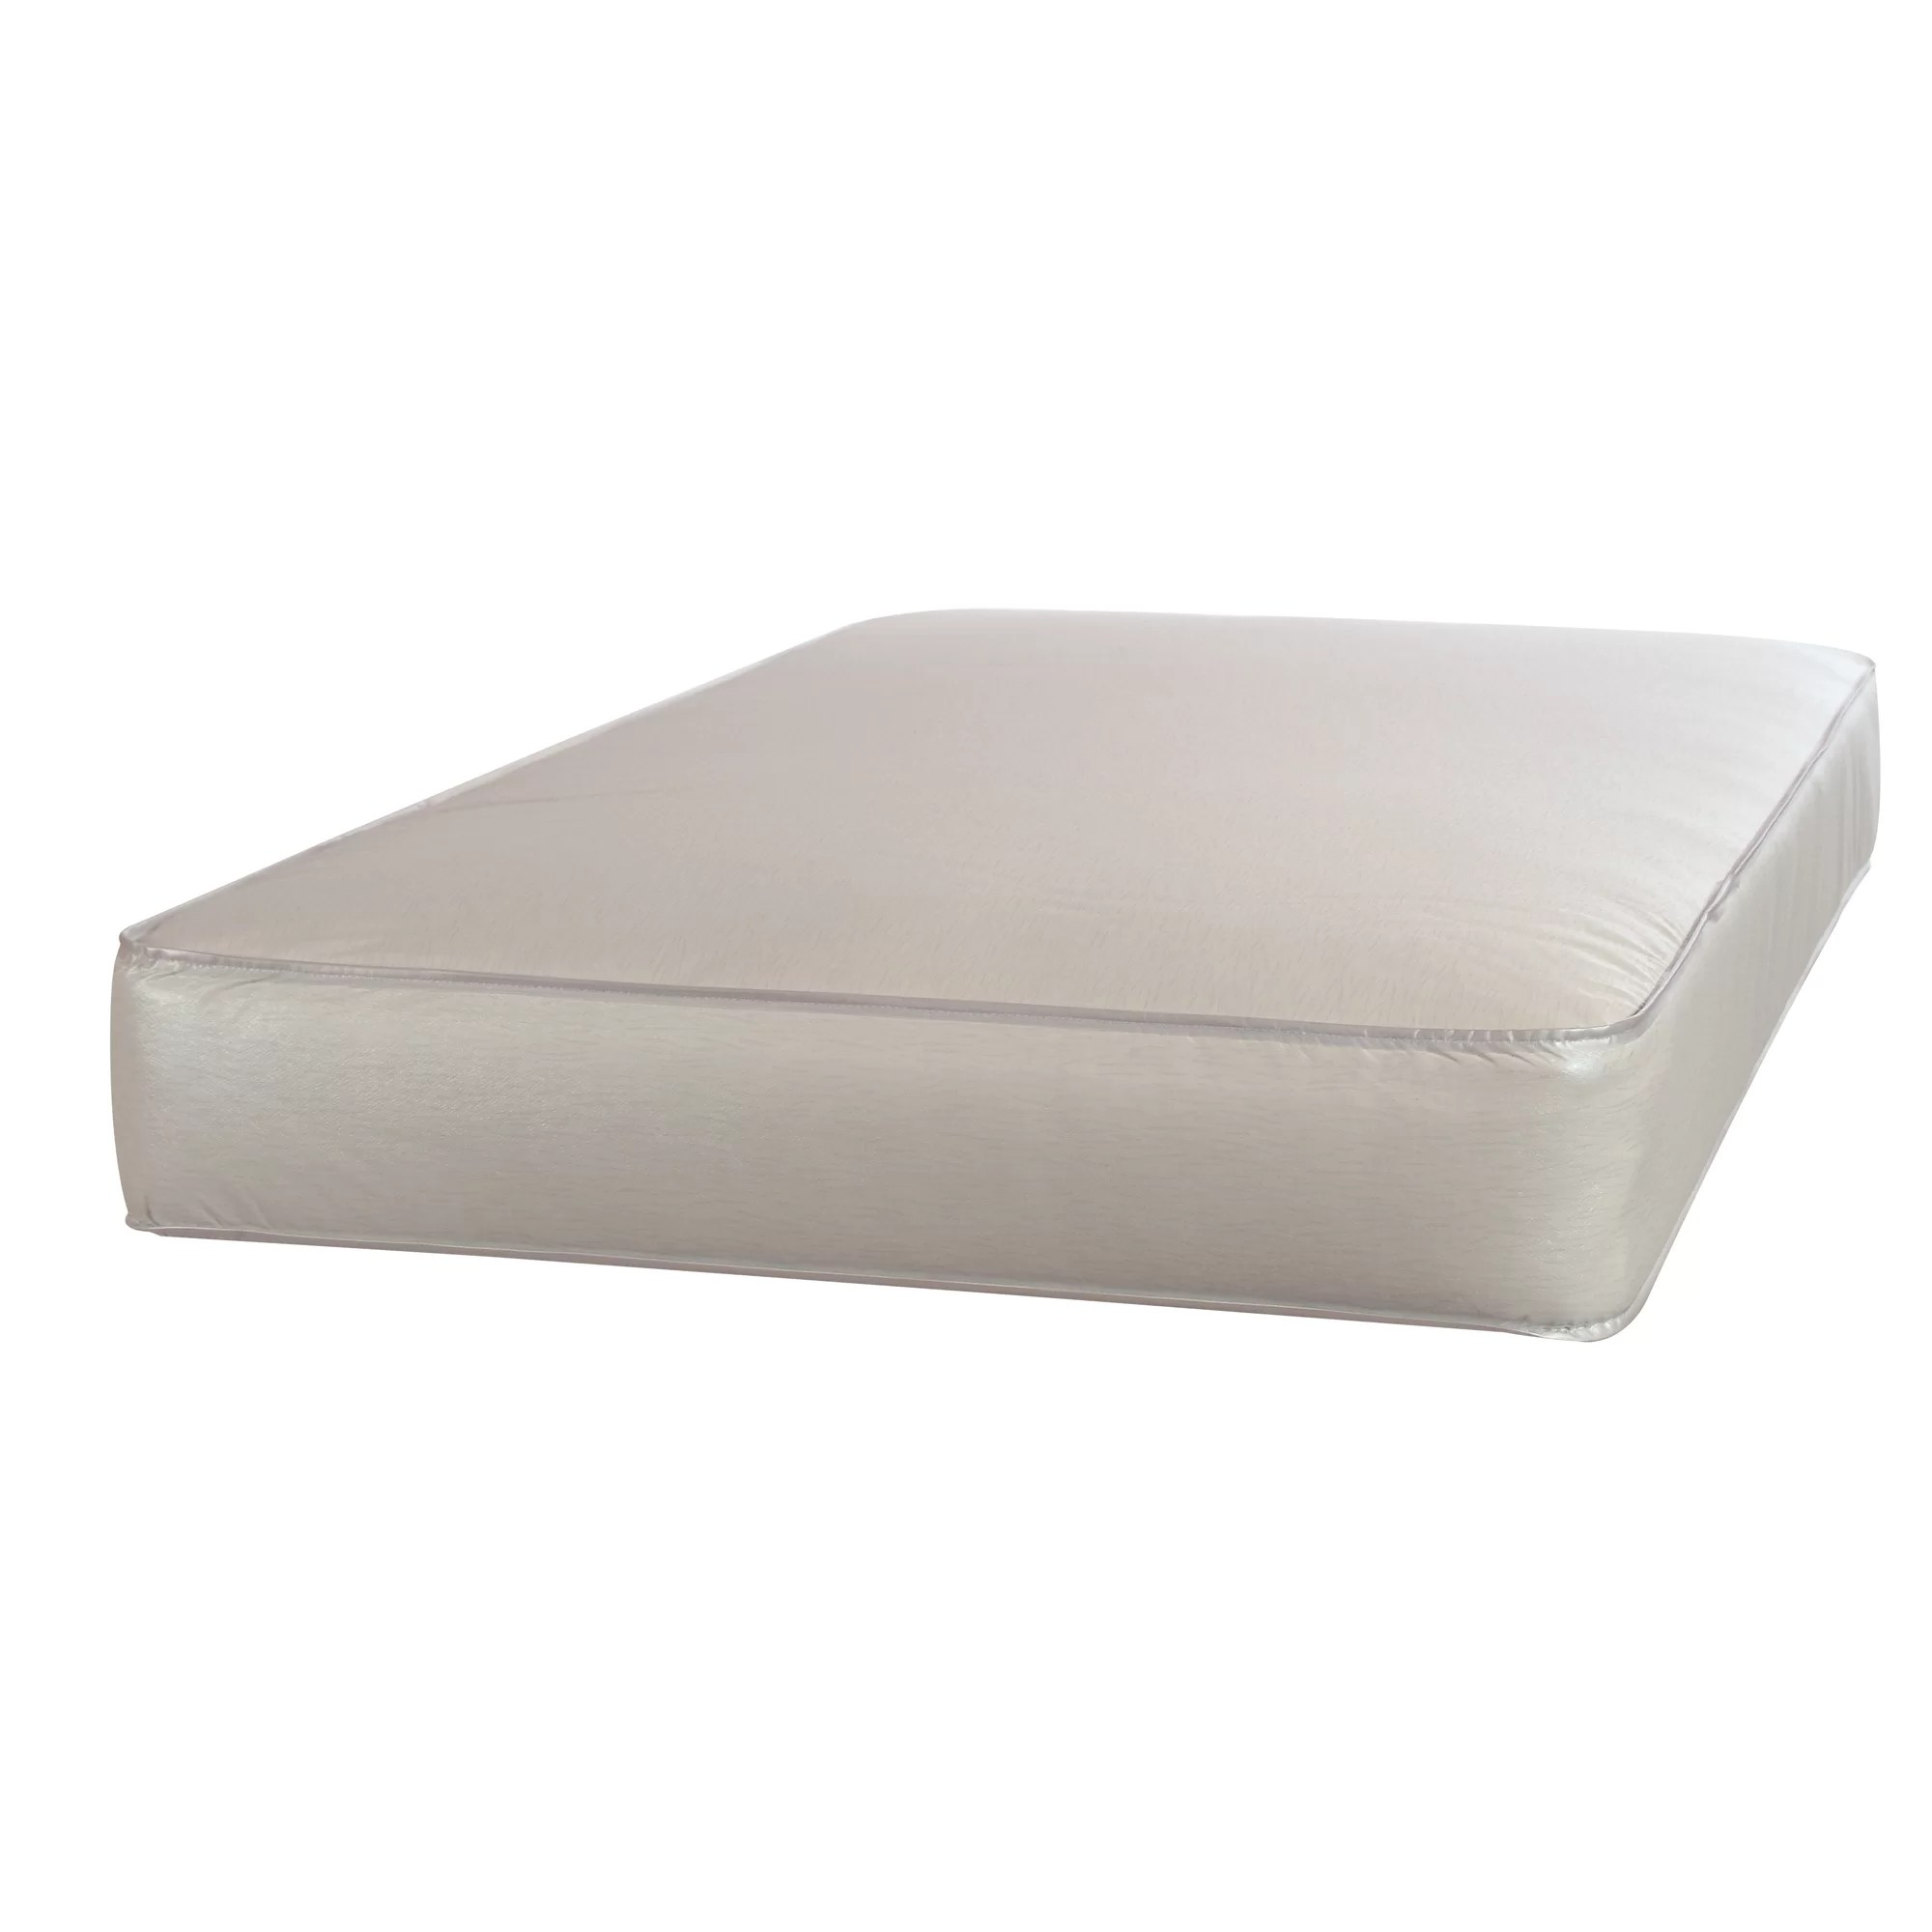 Sealy Perfect Rest 525 Crib  Toddler Bed Mattress  Reviews  Wayfair